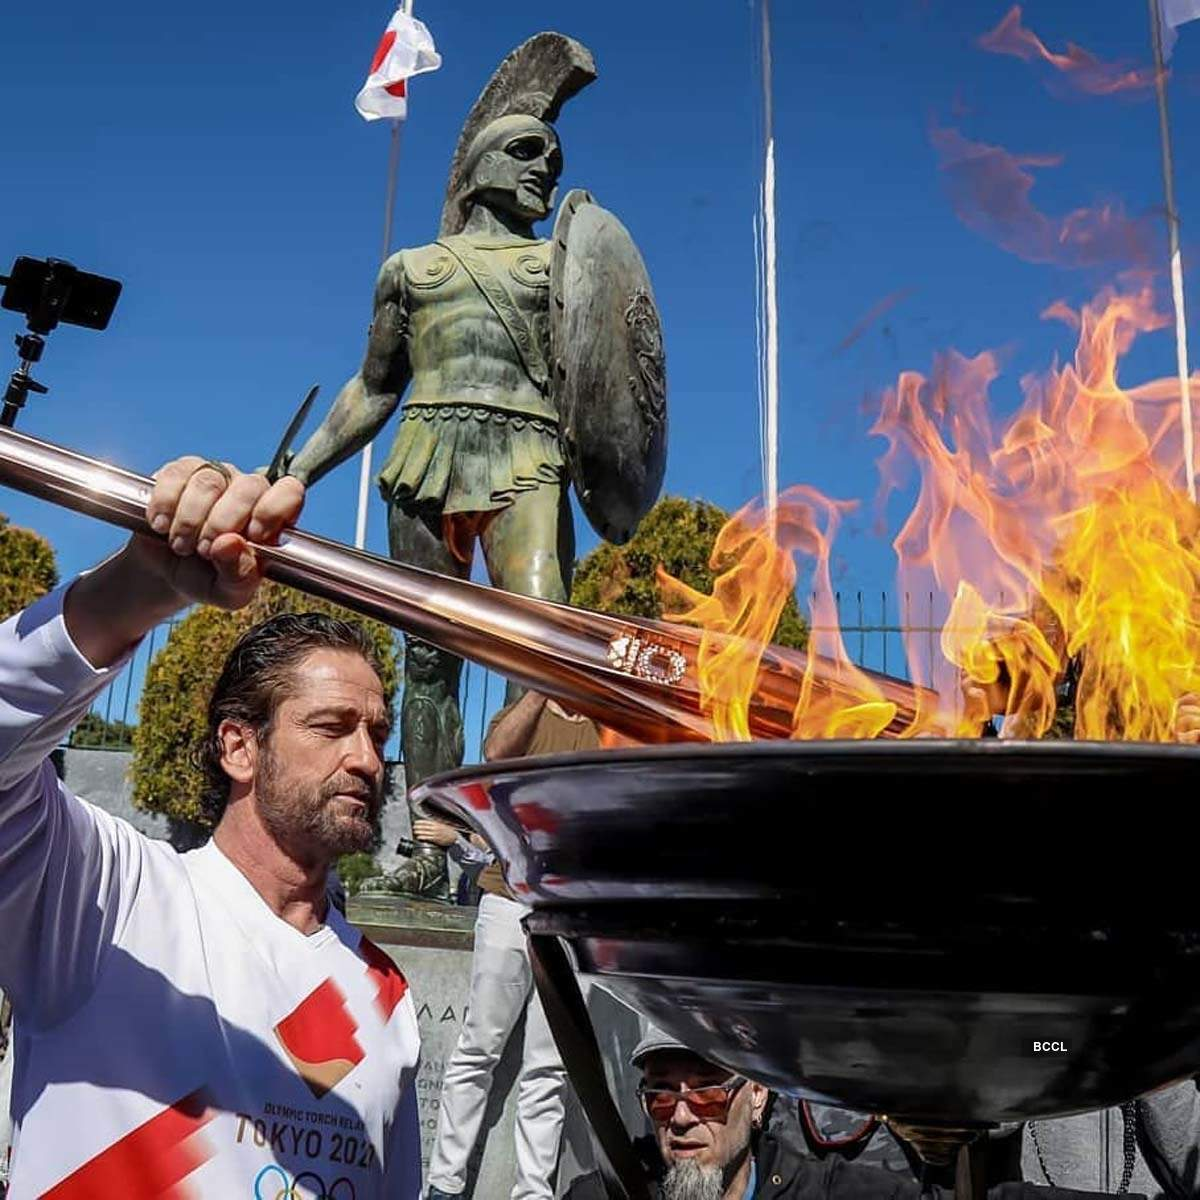 These pictures of the Olympic flame-lighting ceremony will pacify you amid coronavirus pandemic